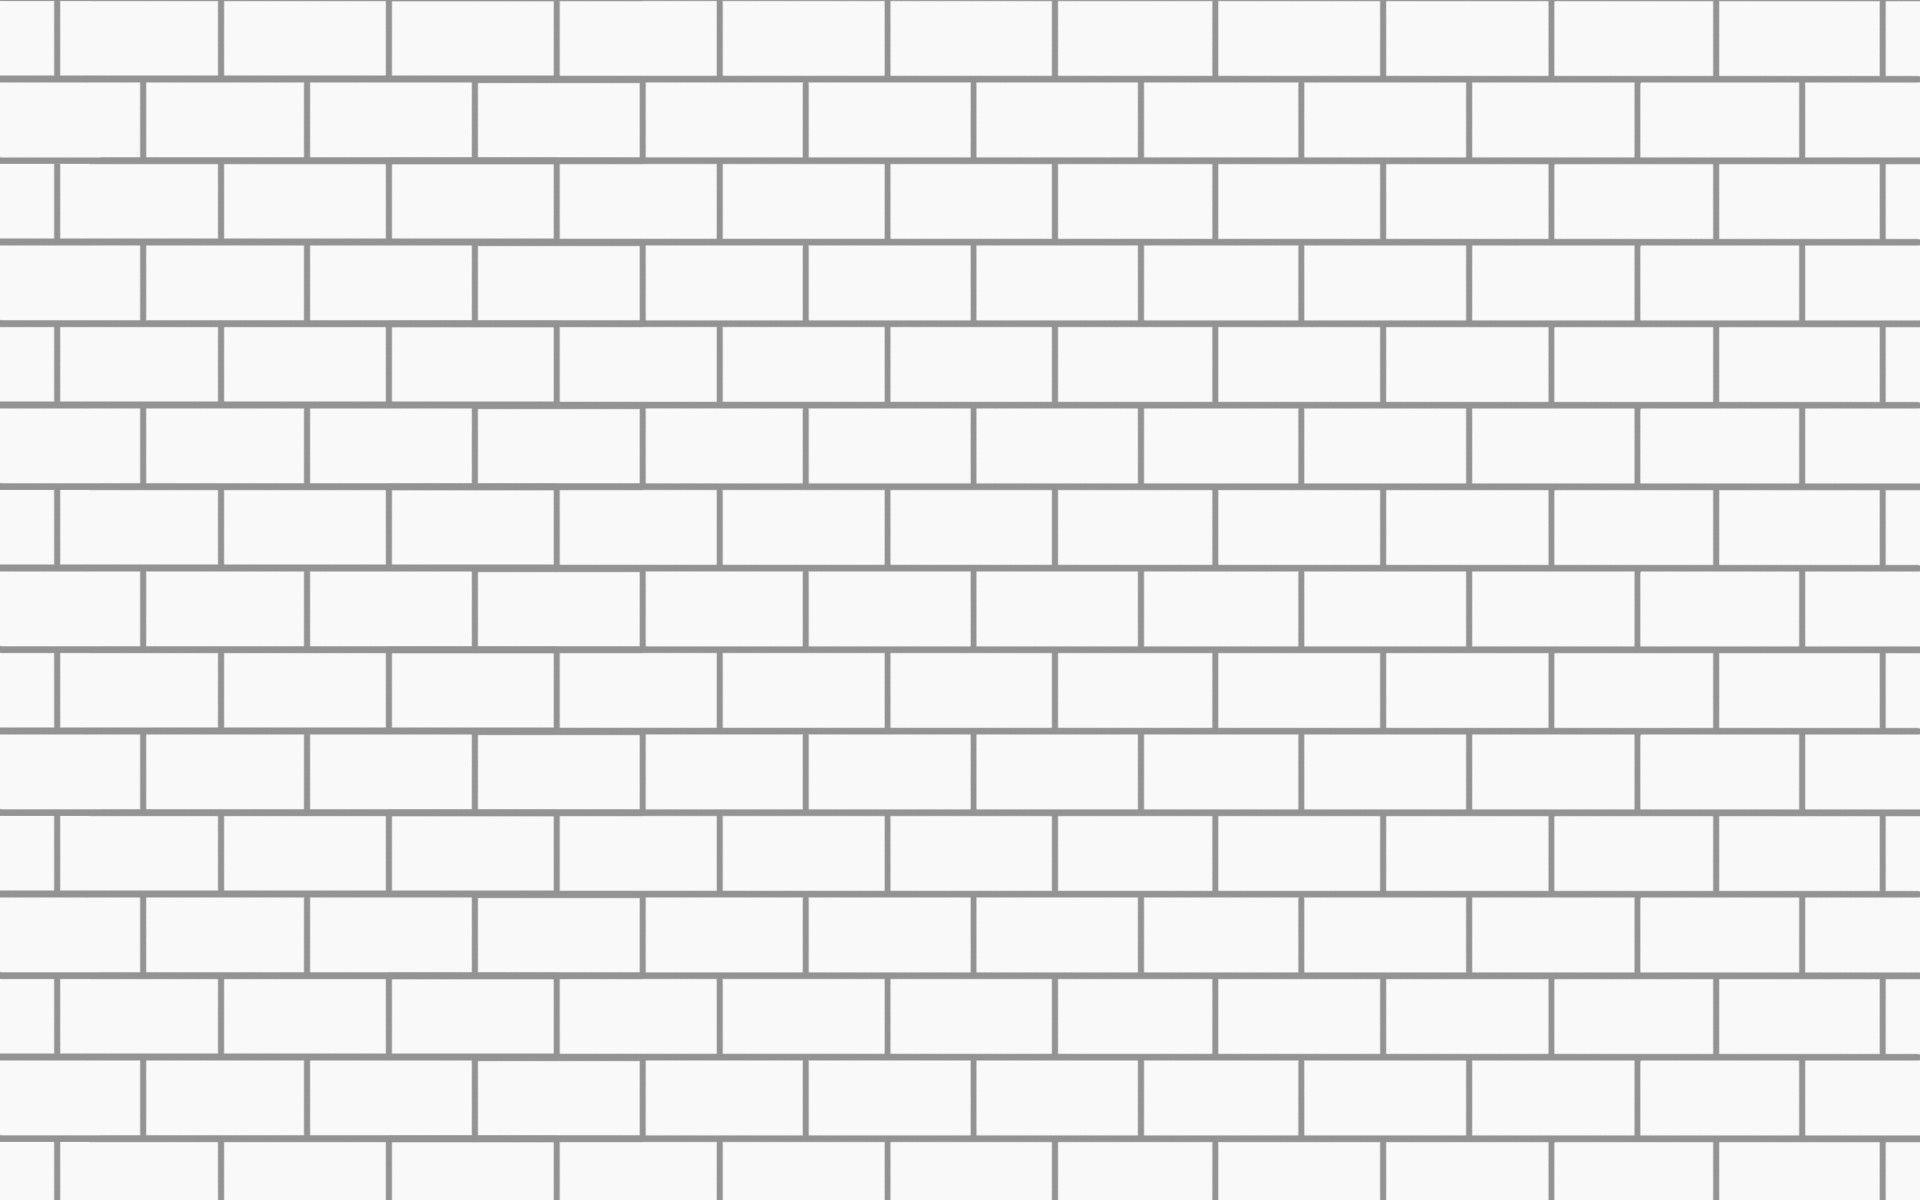 pink floyd the wall wallpapers - wallpaper cave